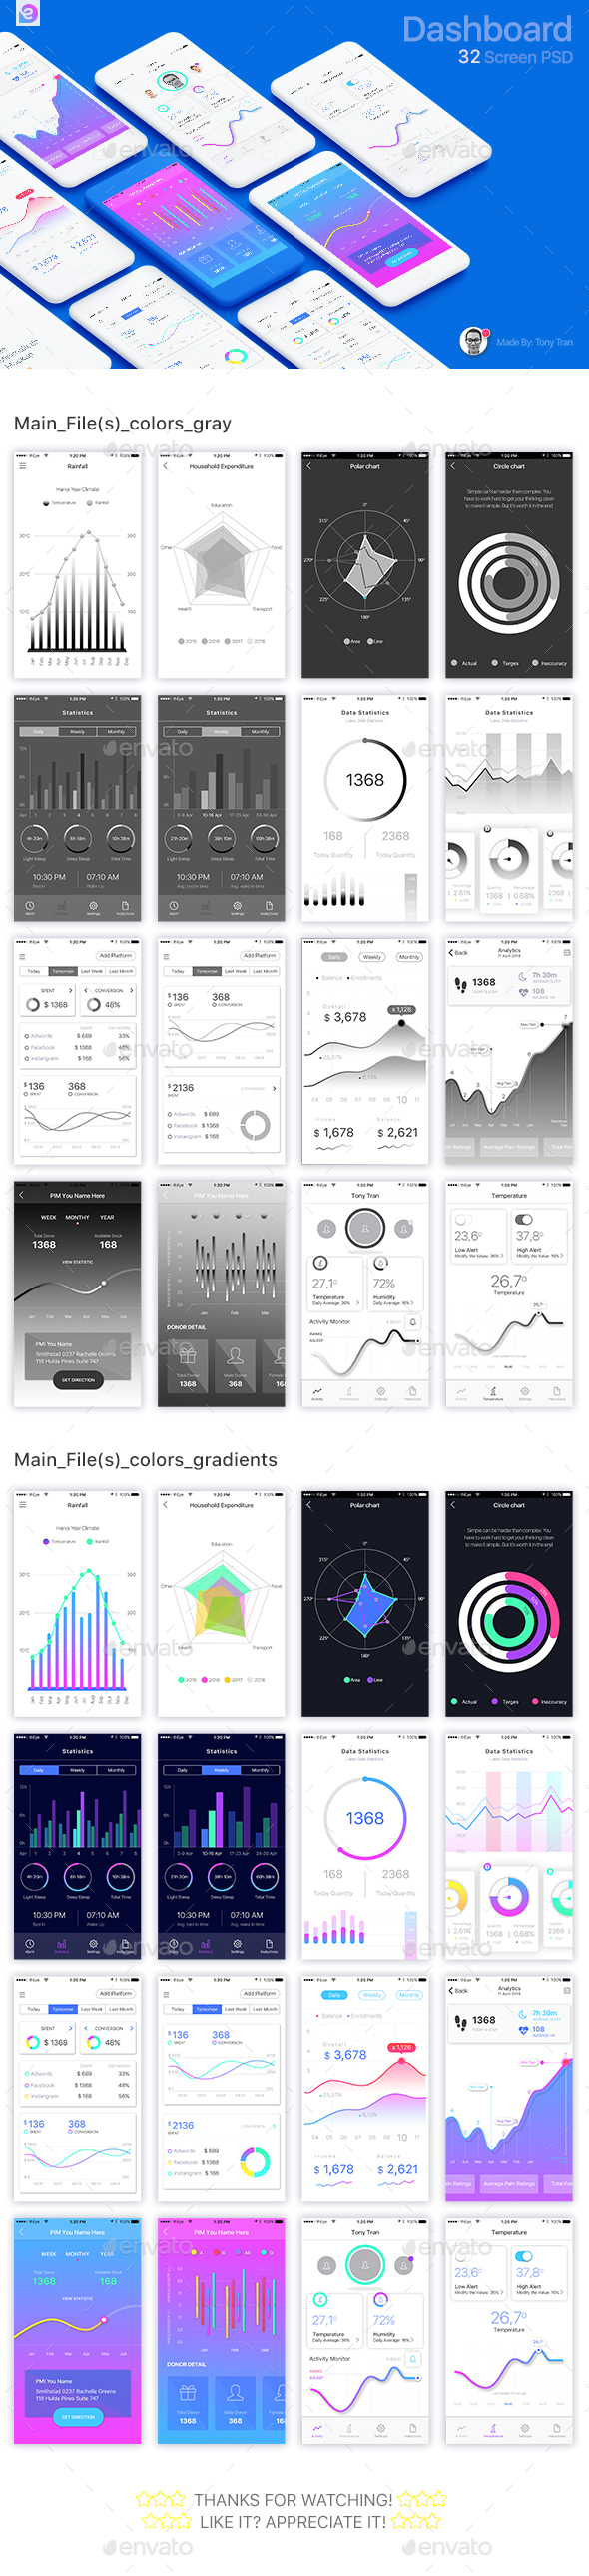 Mobile UI Kit 3 in 1 (User Interfaces)